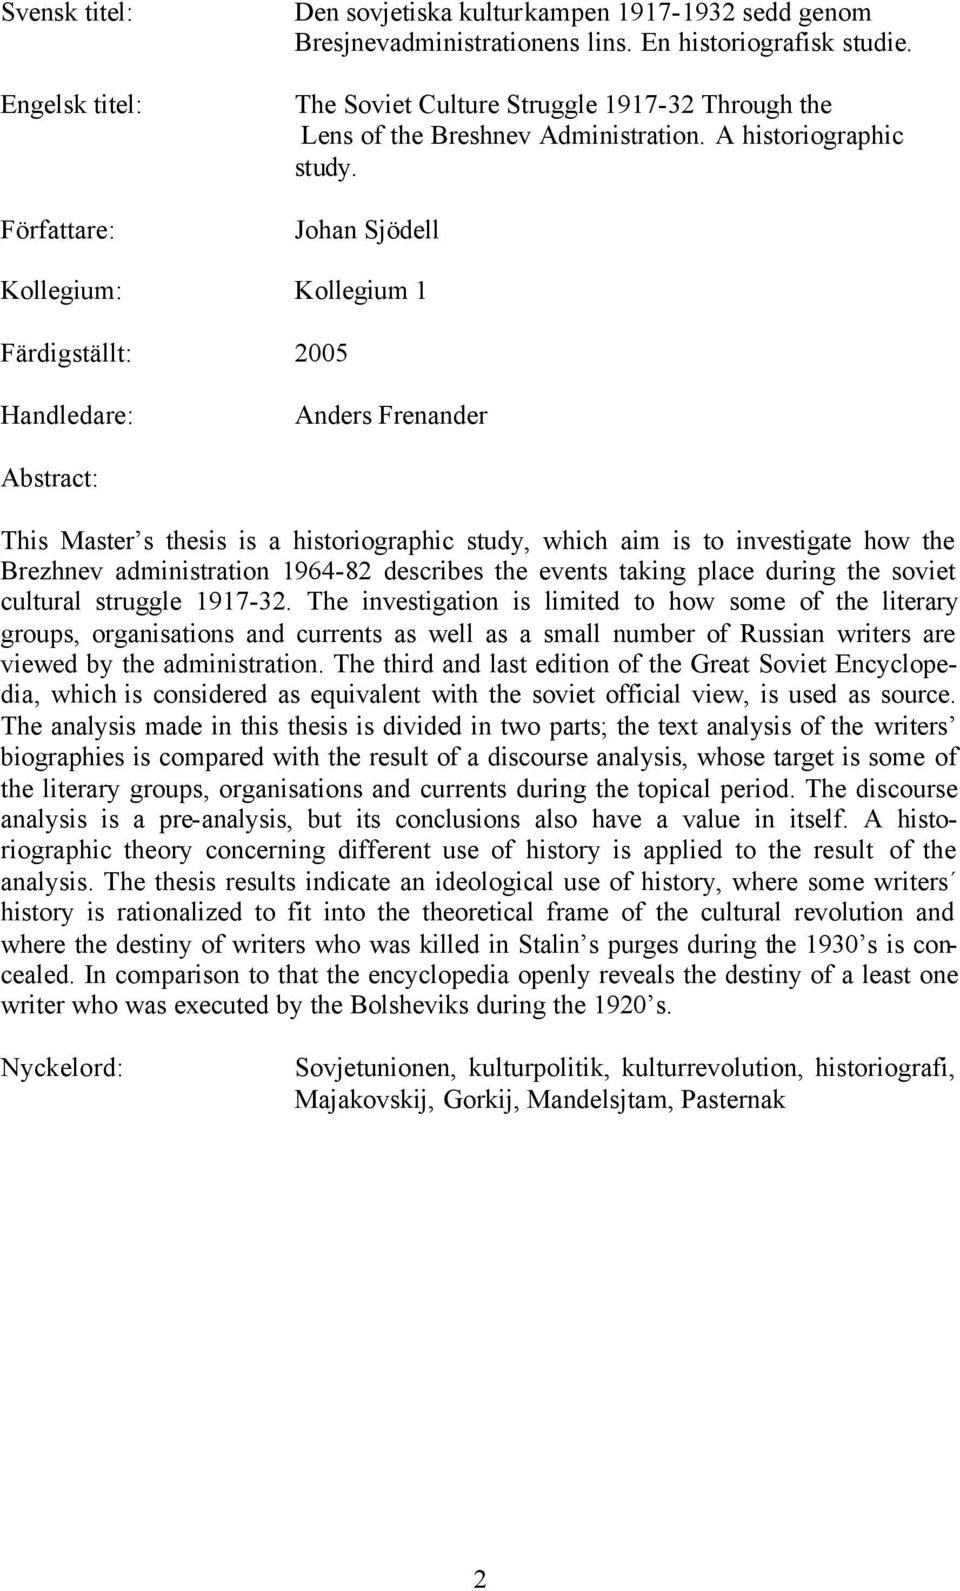 Johan Sjödell Kollegium: Kollegium 1 Färdigställt: 2005 Handledare: Anders Frenander Abstract: This Master s thesis is a historiographic study, which aim is to investigate how the Brezhnev